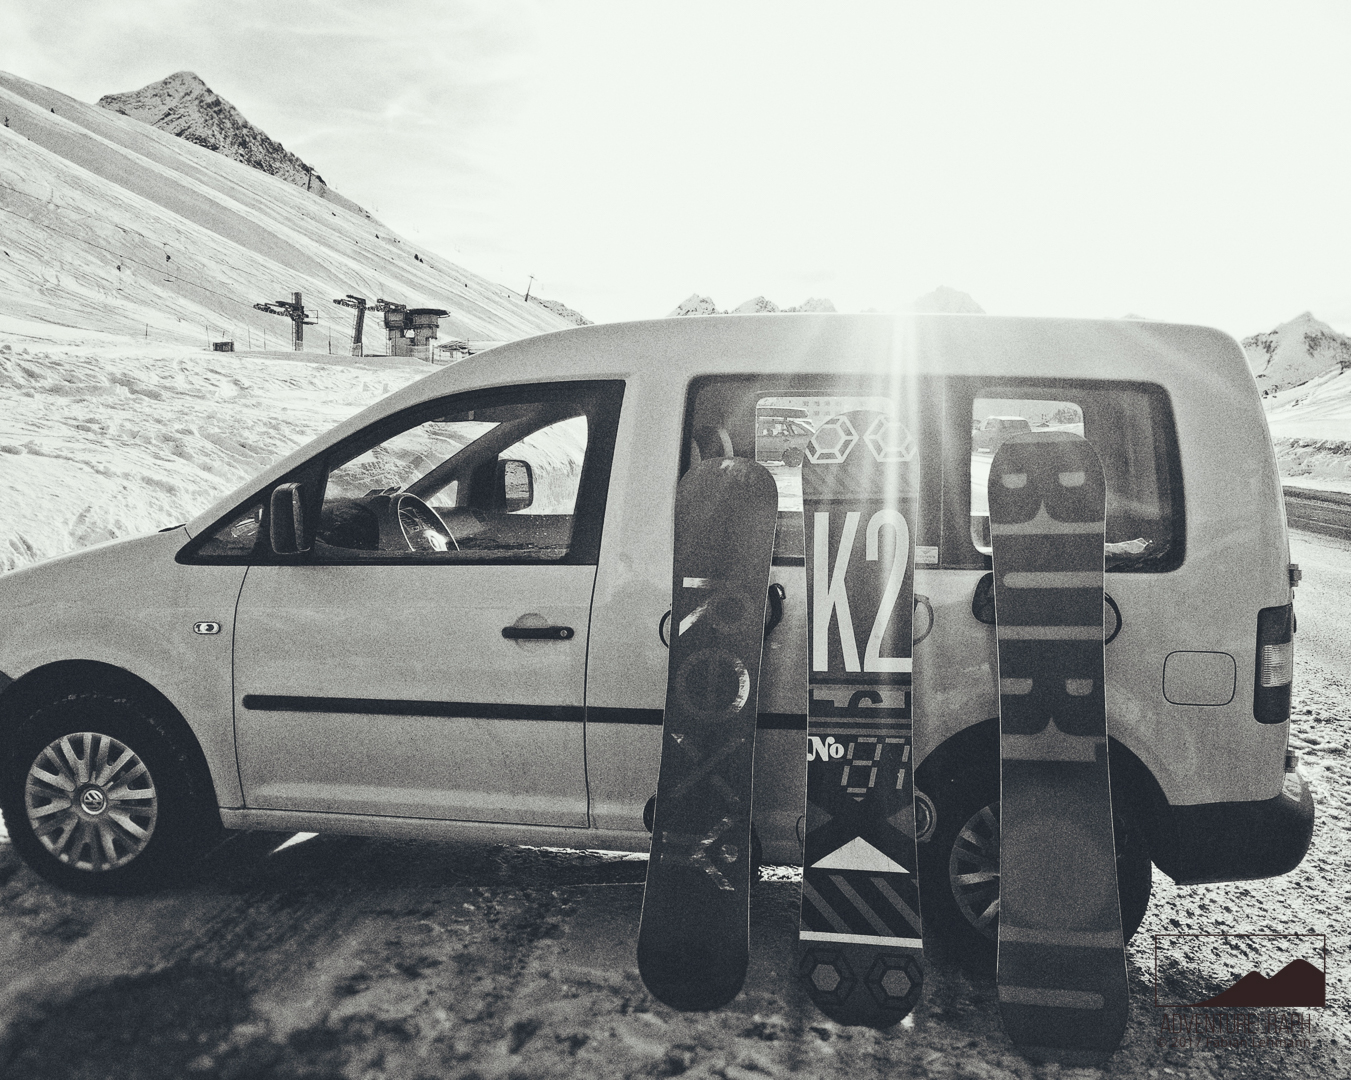 Traveling: A snowboard trip to a ski-resort with a car and friends.